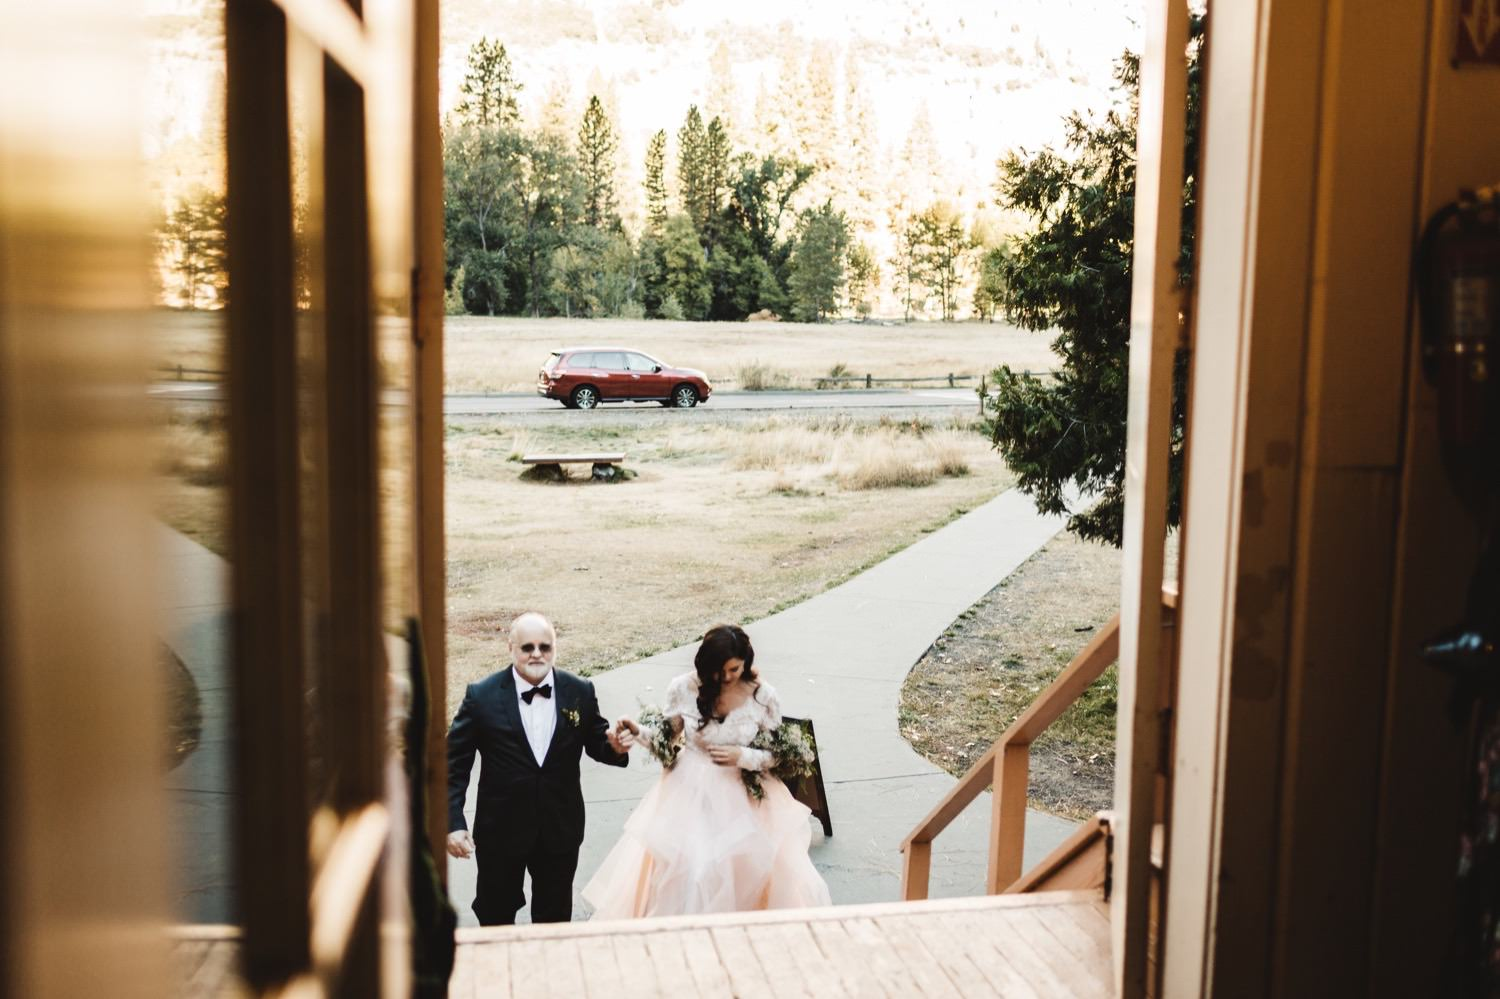 18_alex+matt-wedding-144_park_national_elopement_wedding_yosemite_intimate.jpg